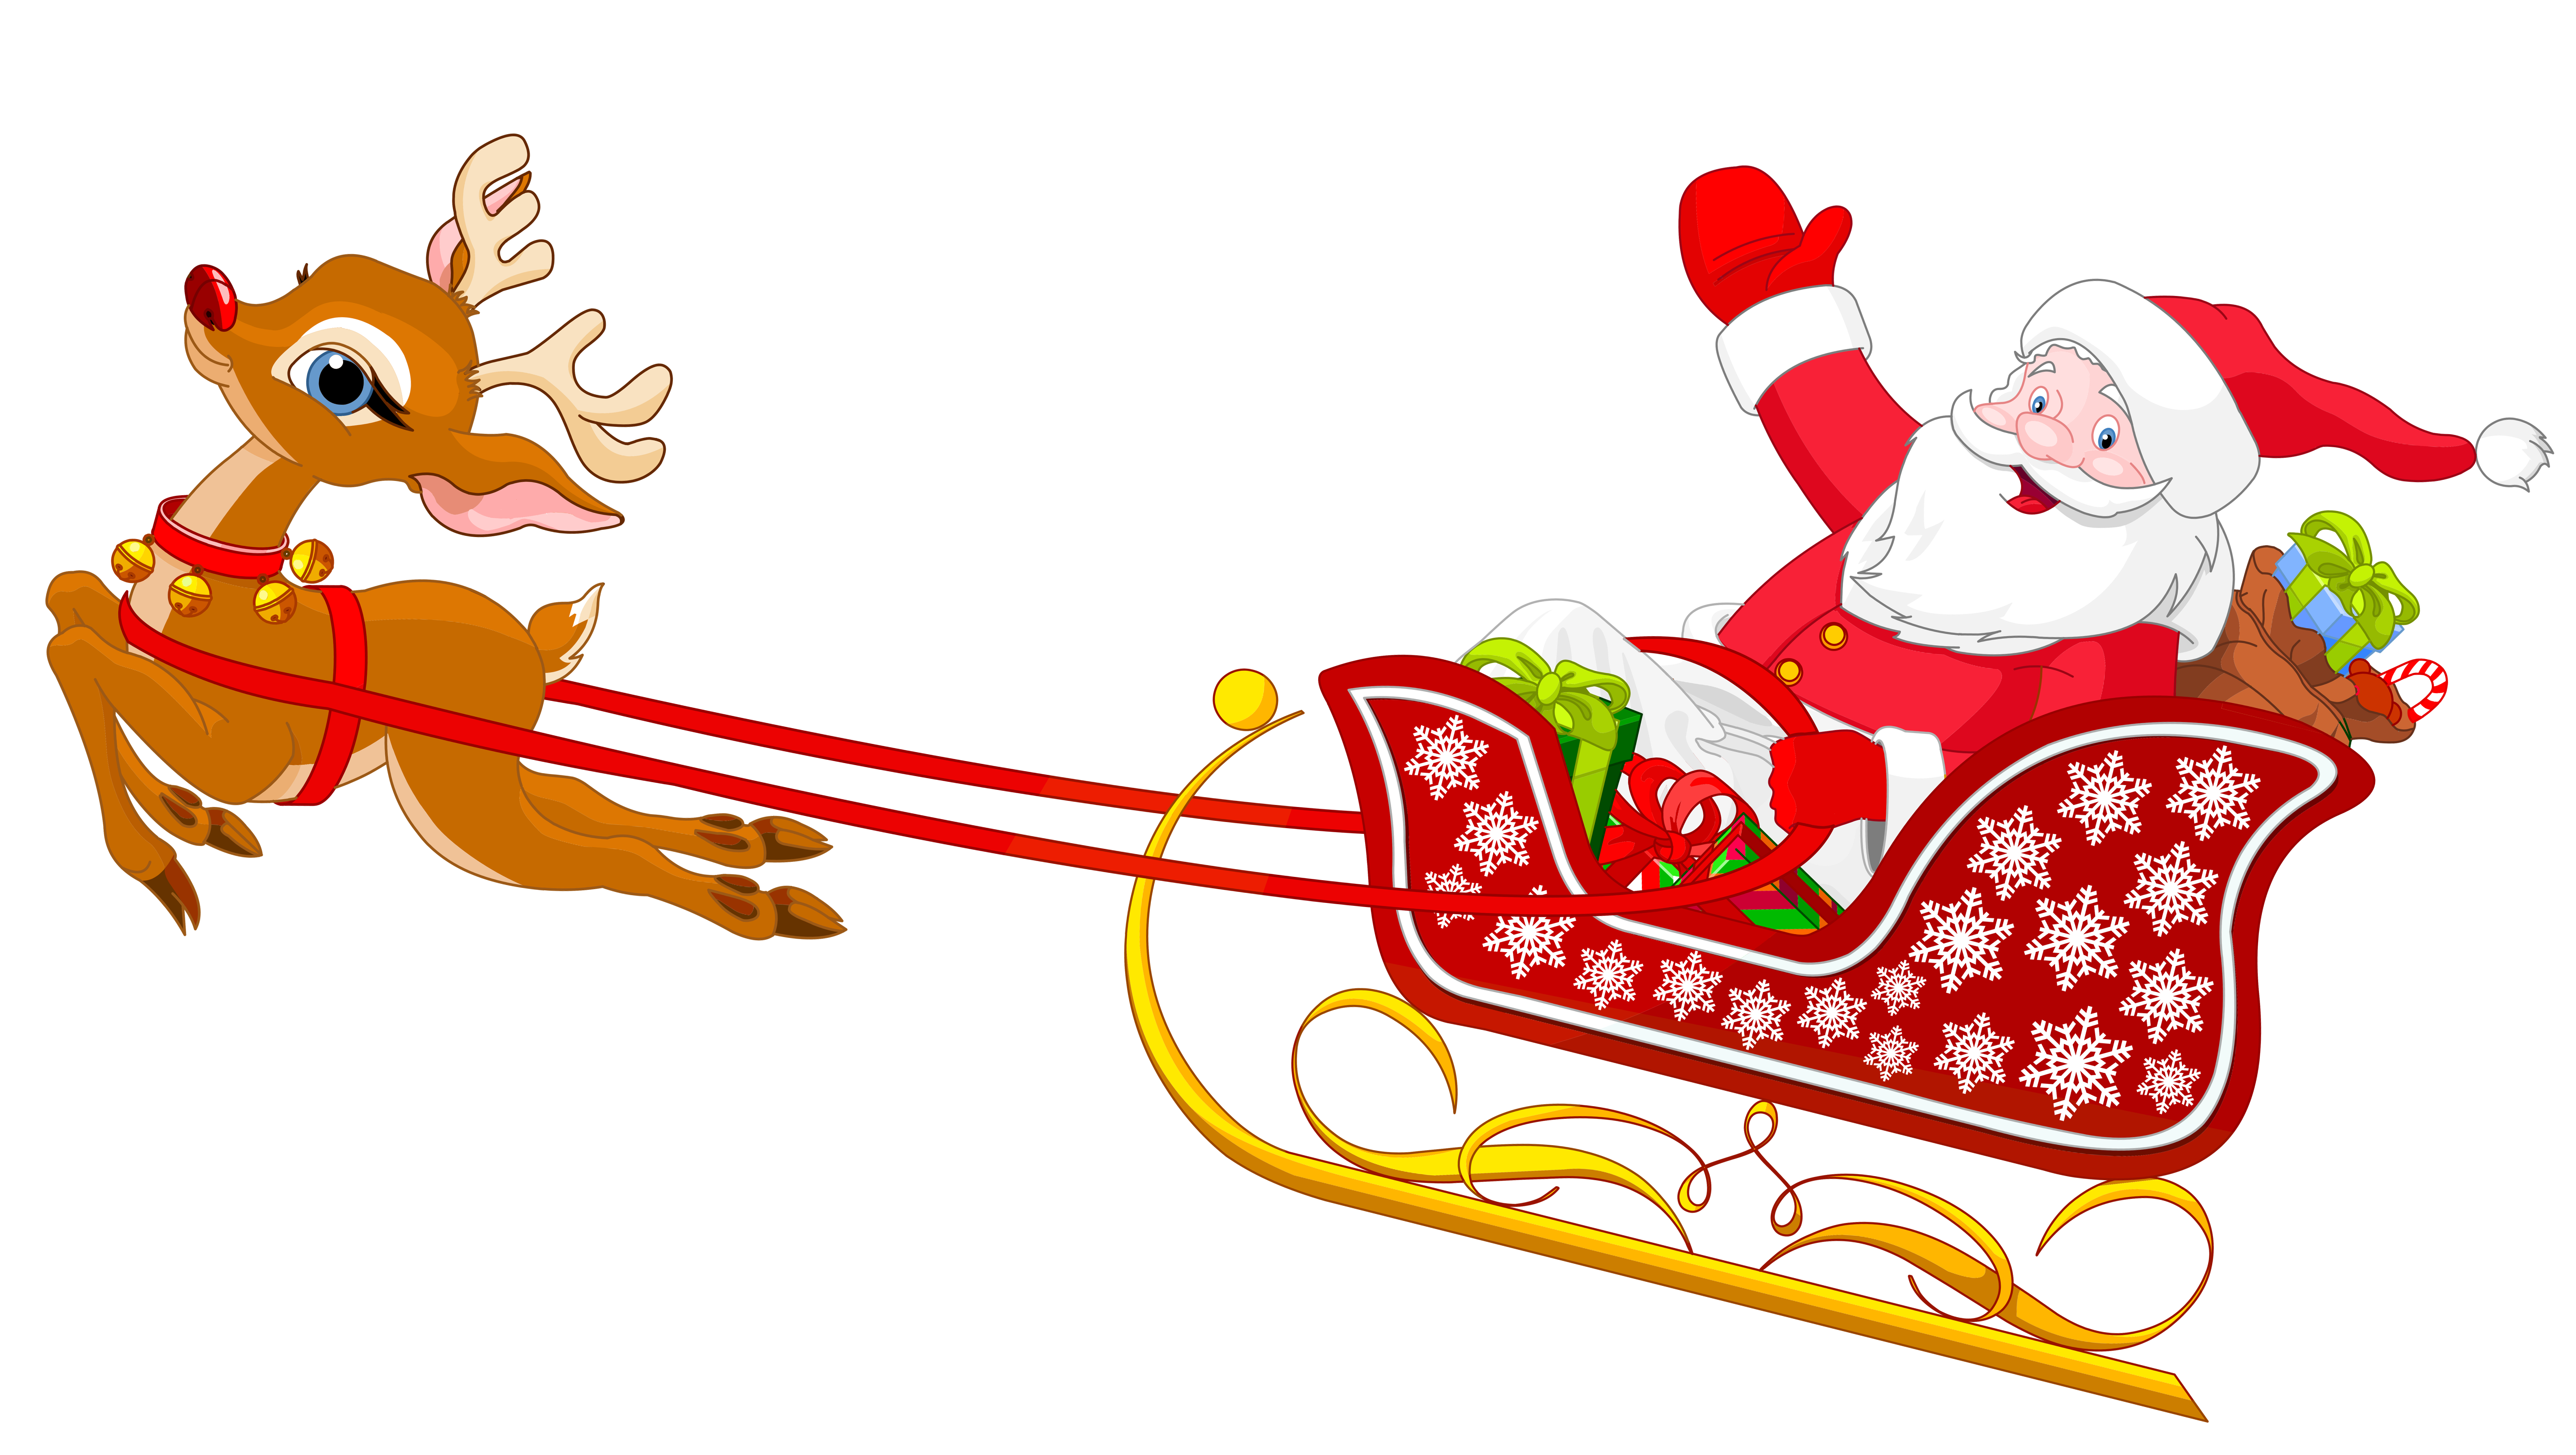 Clipart santa in sleigh vector free library Pin by Елена on Новый год | Santa sleigh, Santa claus clipart, Santa ... vector free library